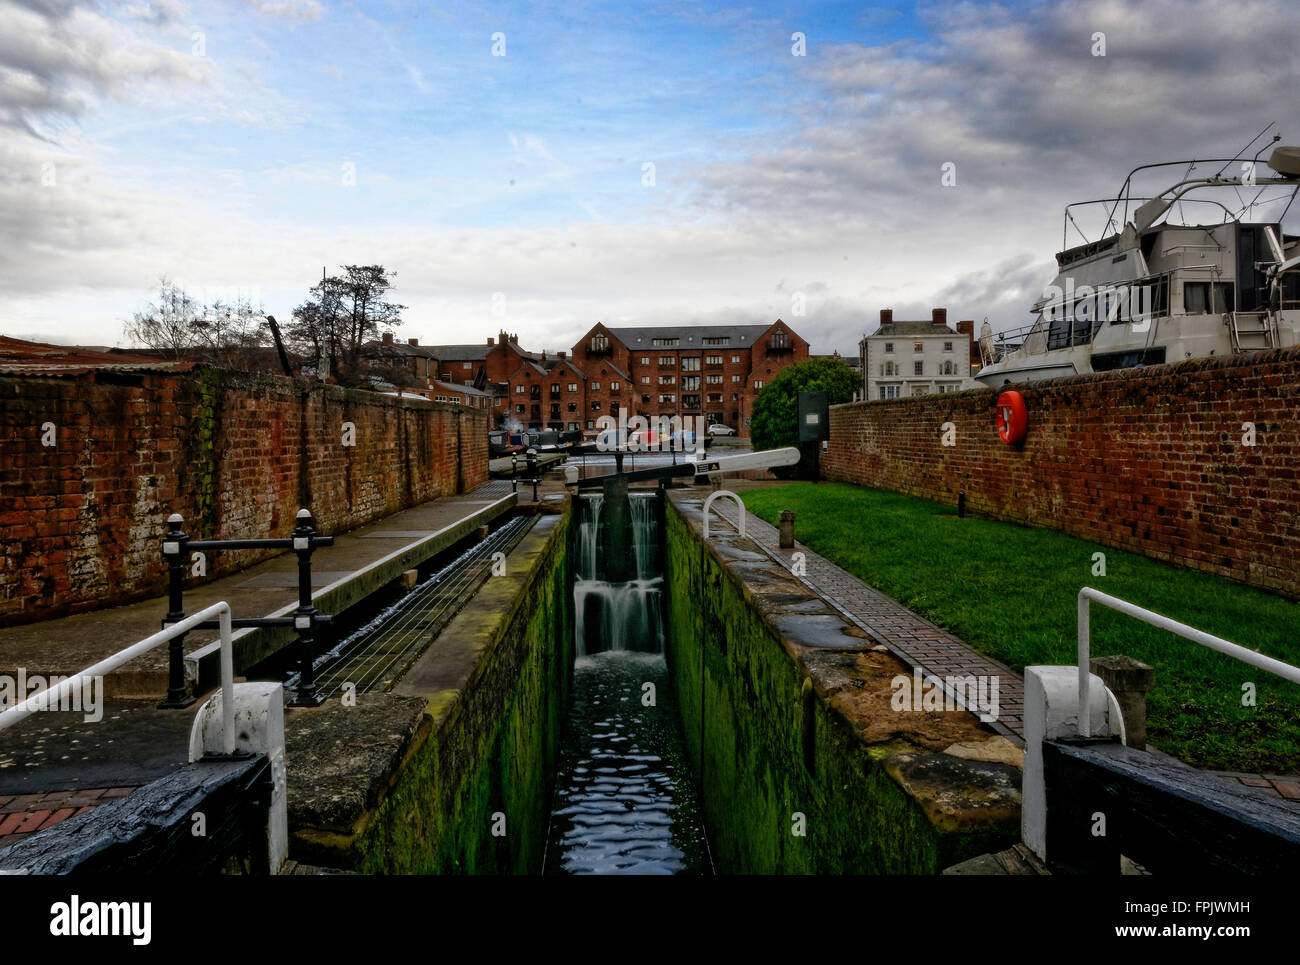 Water cascades through a half open lock gate linking the River Severn at the Canal basin at Stourport upon Severn - Stock Image